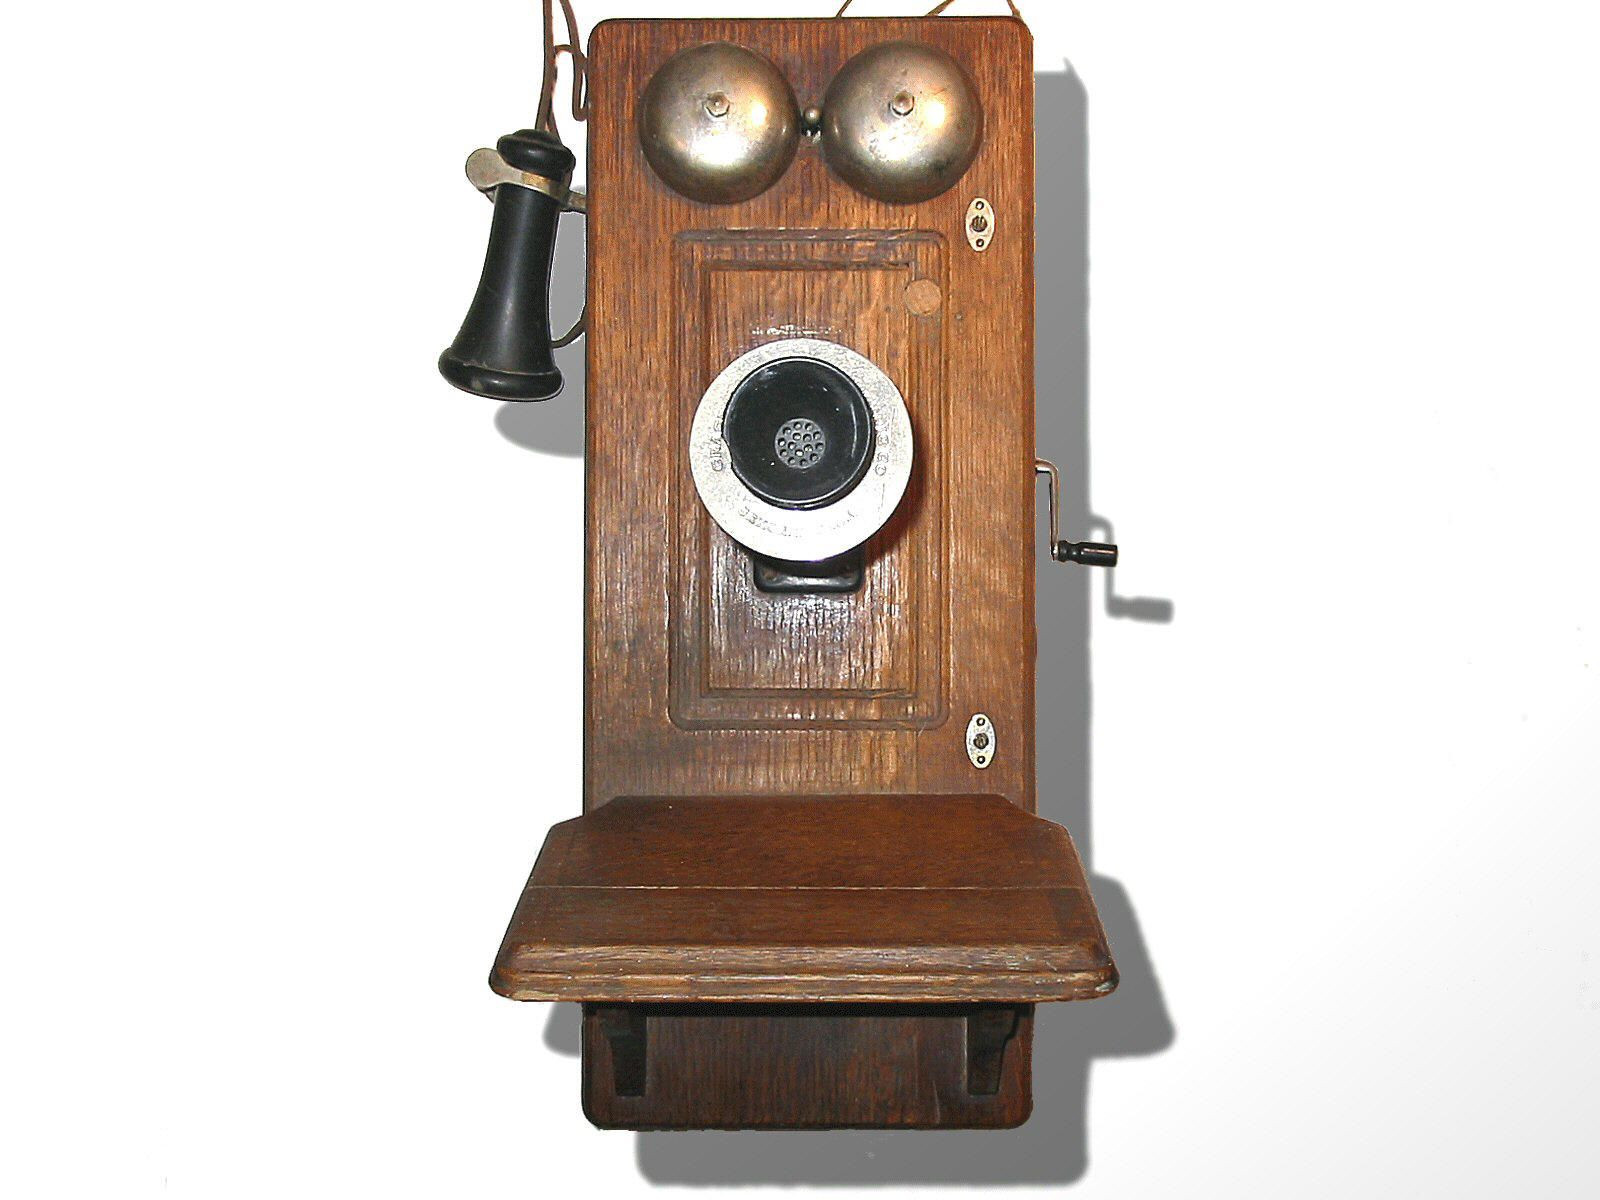 Vintage Wall Phone Luxury I Have This that My Grandmother Gave Me Wonder What Its Of Unique 42 Pictures Vintage Wall Phone